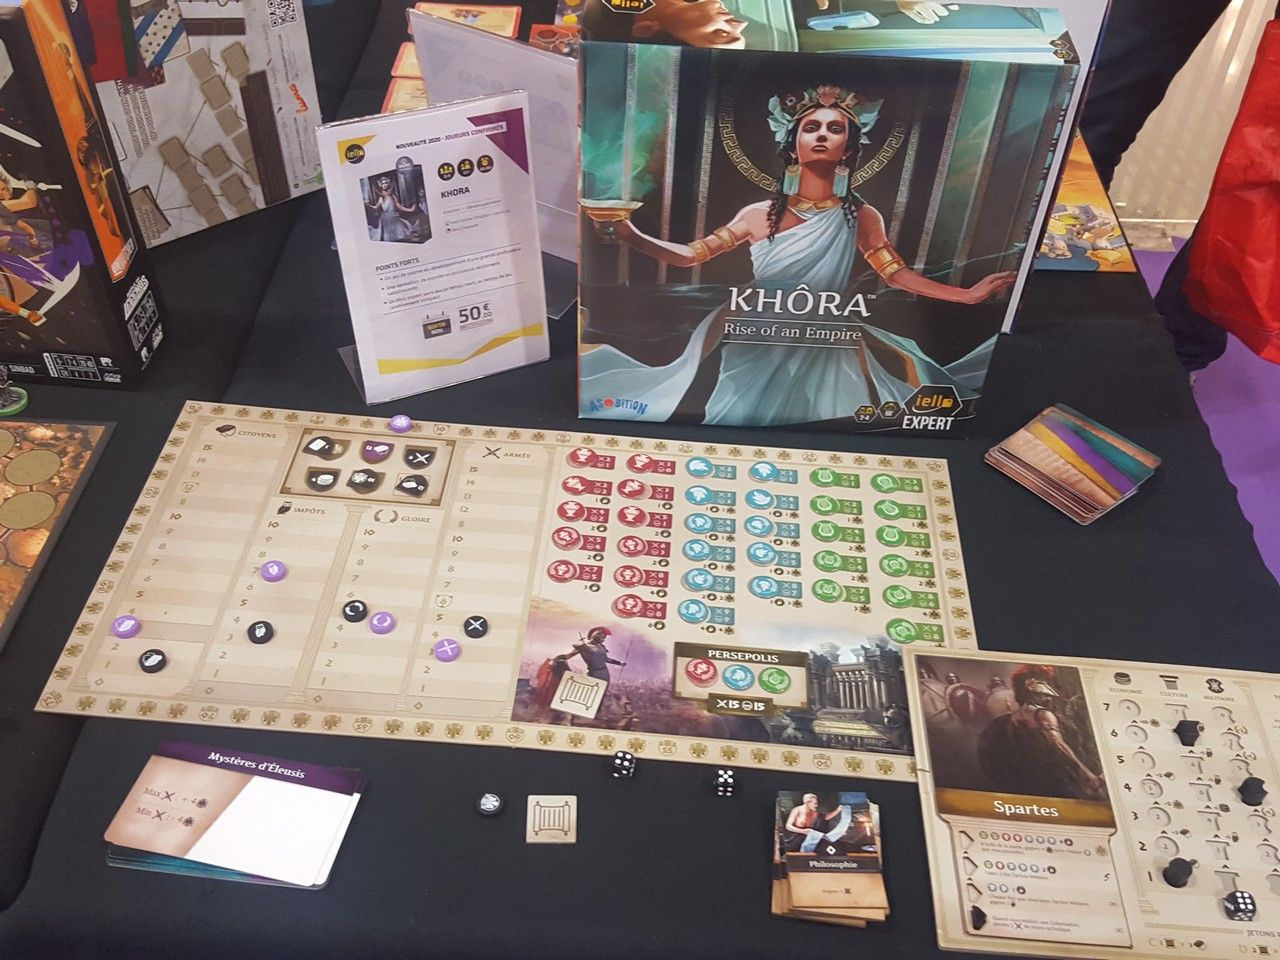 Khôra : rise of Empire.